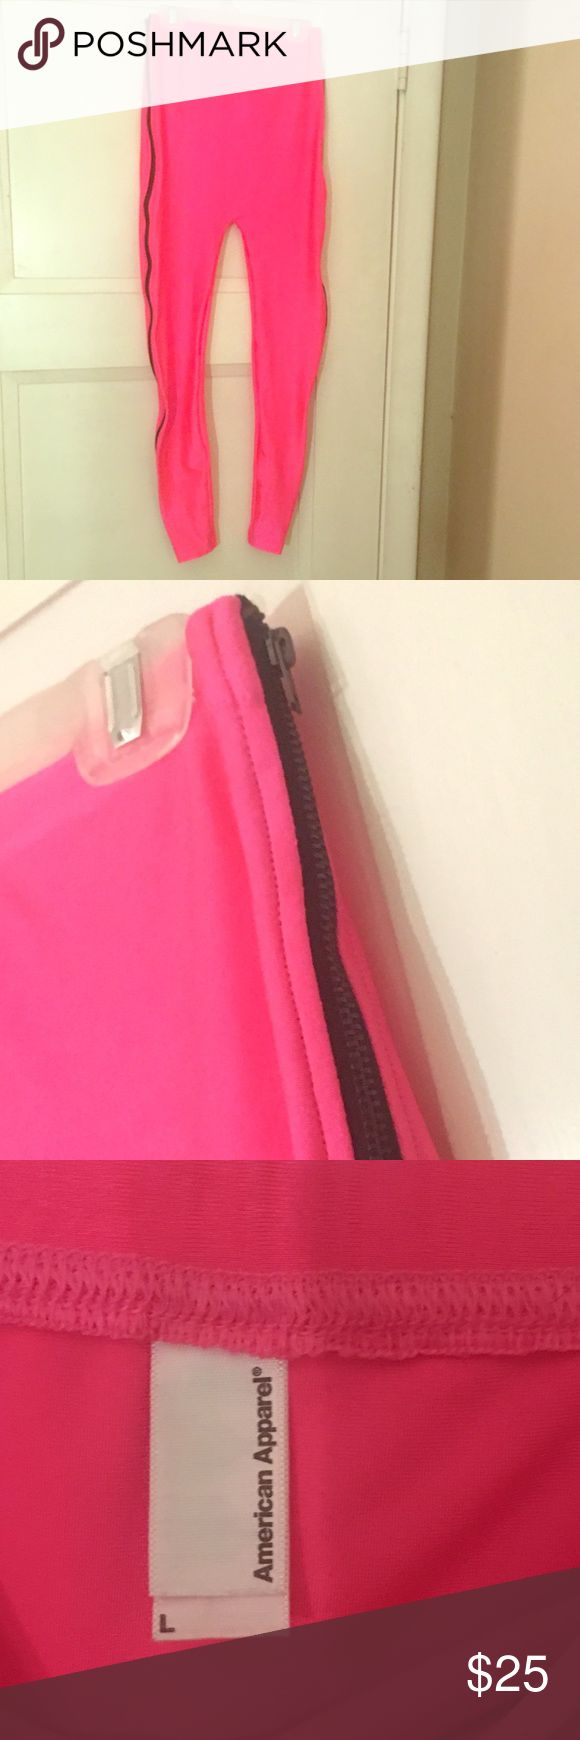 American apparel hot pink zip up leggings L American apparel hot pink shiny & crazy but cute zip up leggings size L black zip up all the way on each side outside. worn once in perfect condition Electric Yoga Pants Leggings